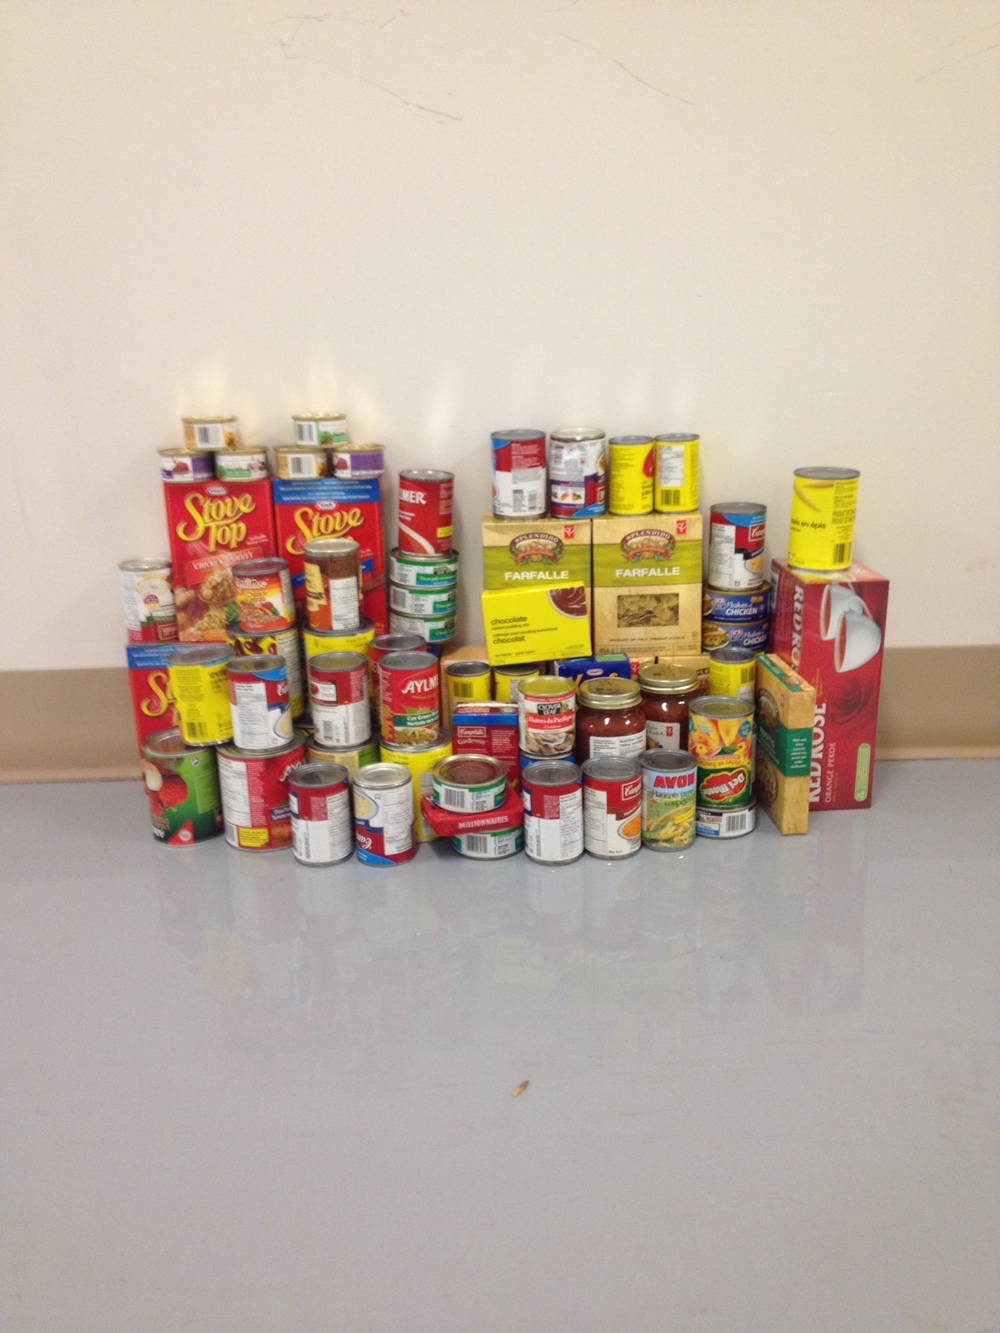 Nice work everyone: A hefty food bank donation from my clients!